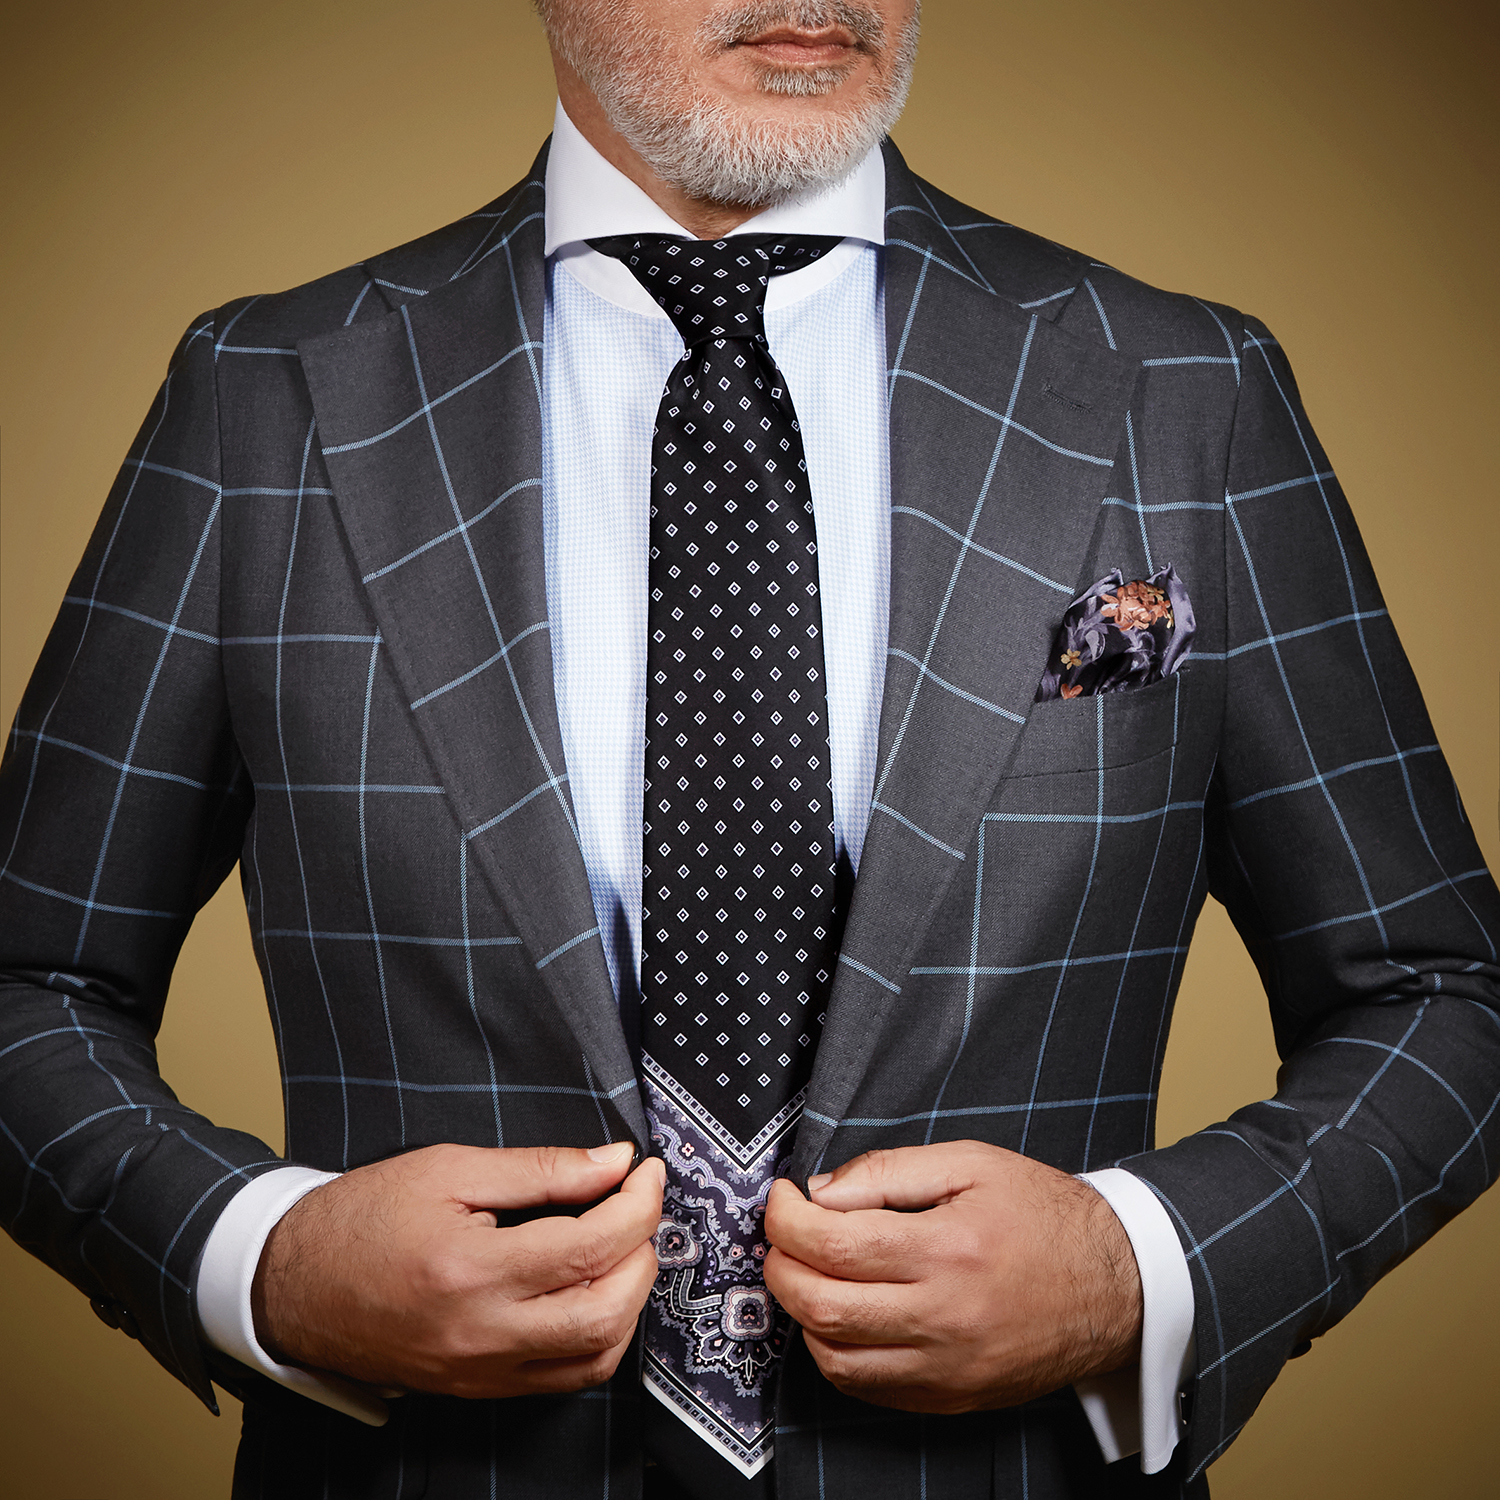 Person dressed in suit with tie and pocket square